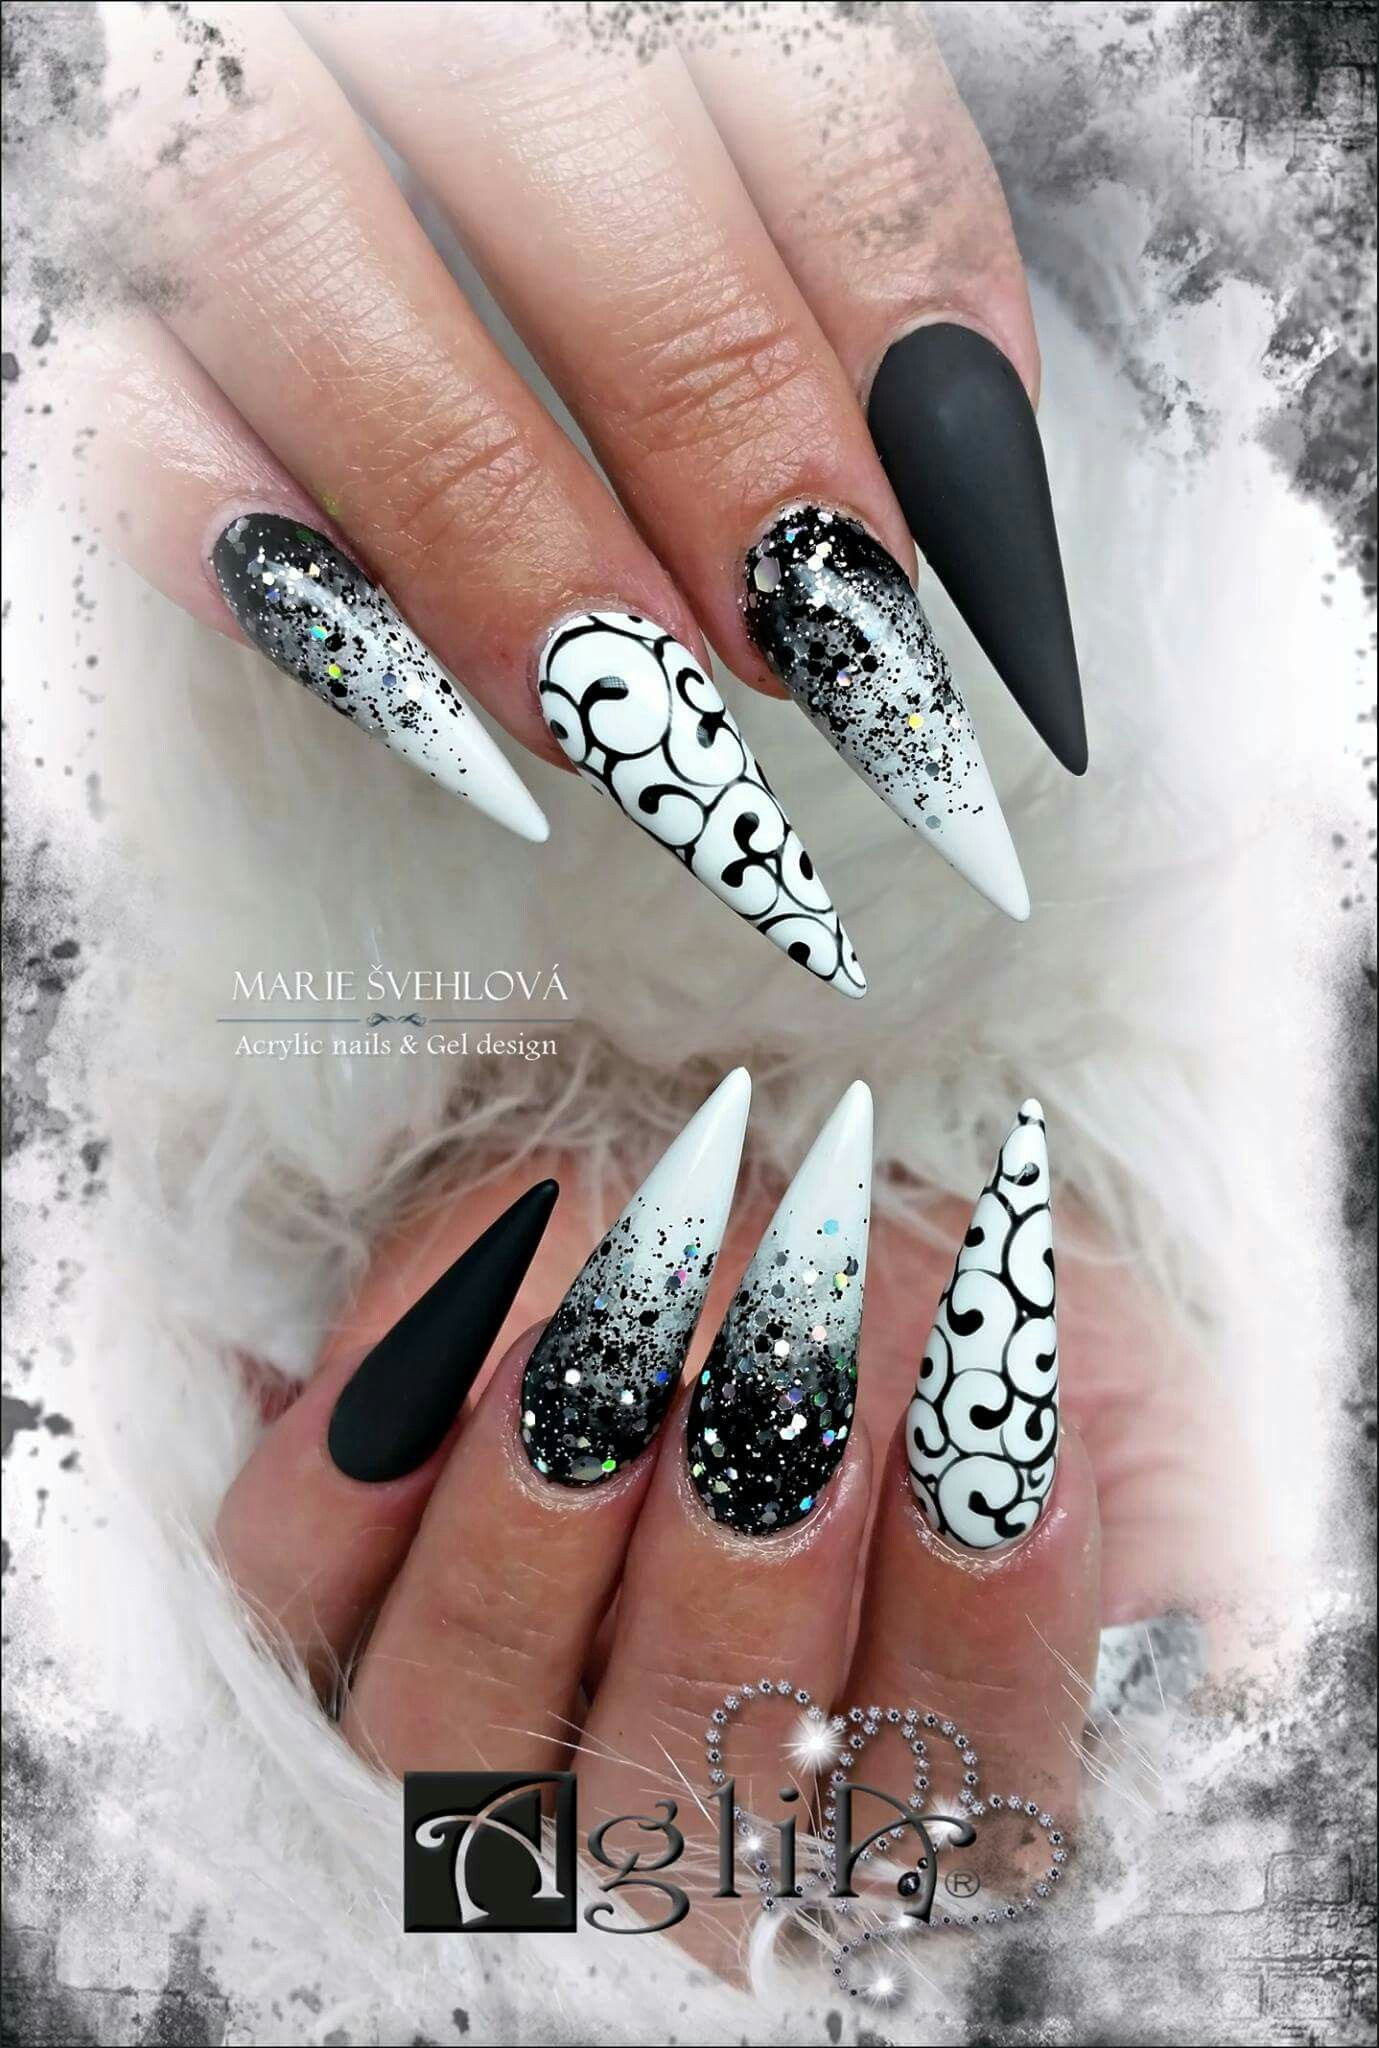 Acrylic Nails Gel Design Black White Nails Black Nail Designs White Nail Art White Nails